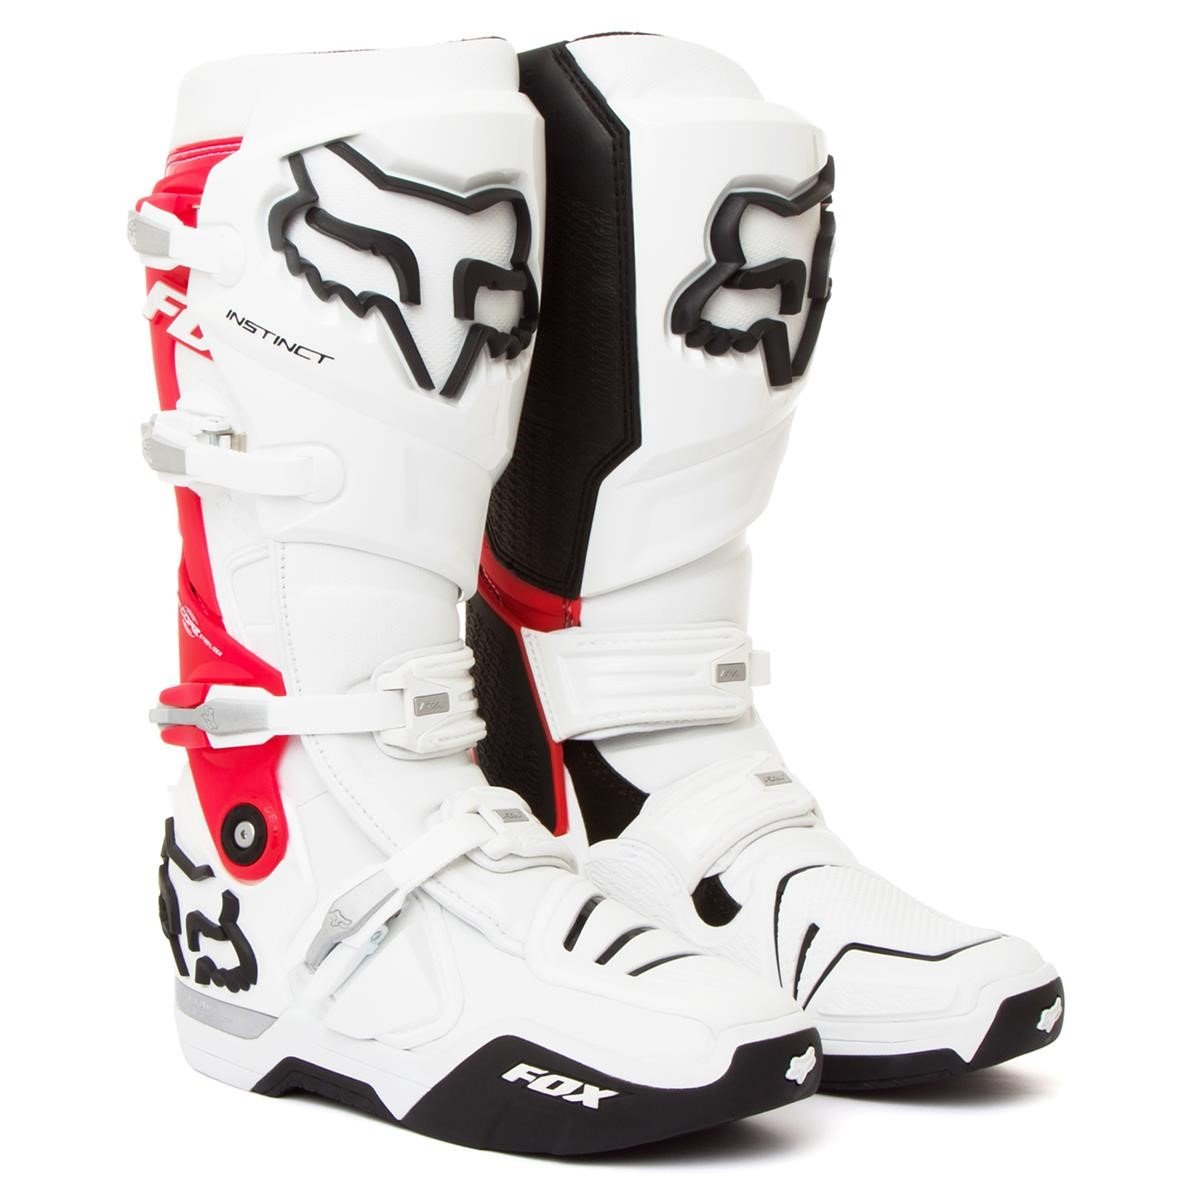 fox motocross stiefel instinct white red 2012 maciag offroad. Black Bedroom Furniture Sets. Home Design Ideas